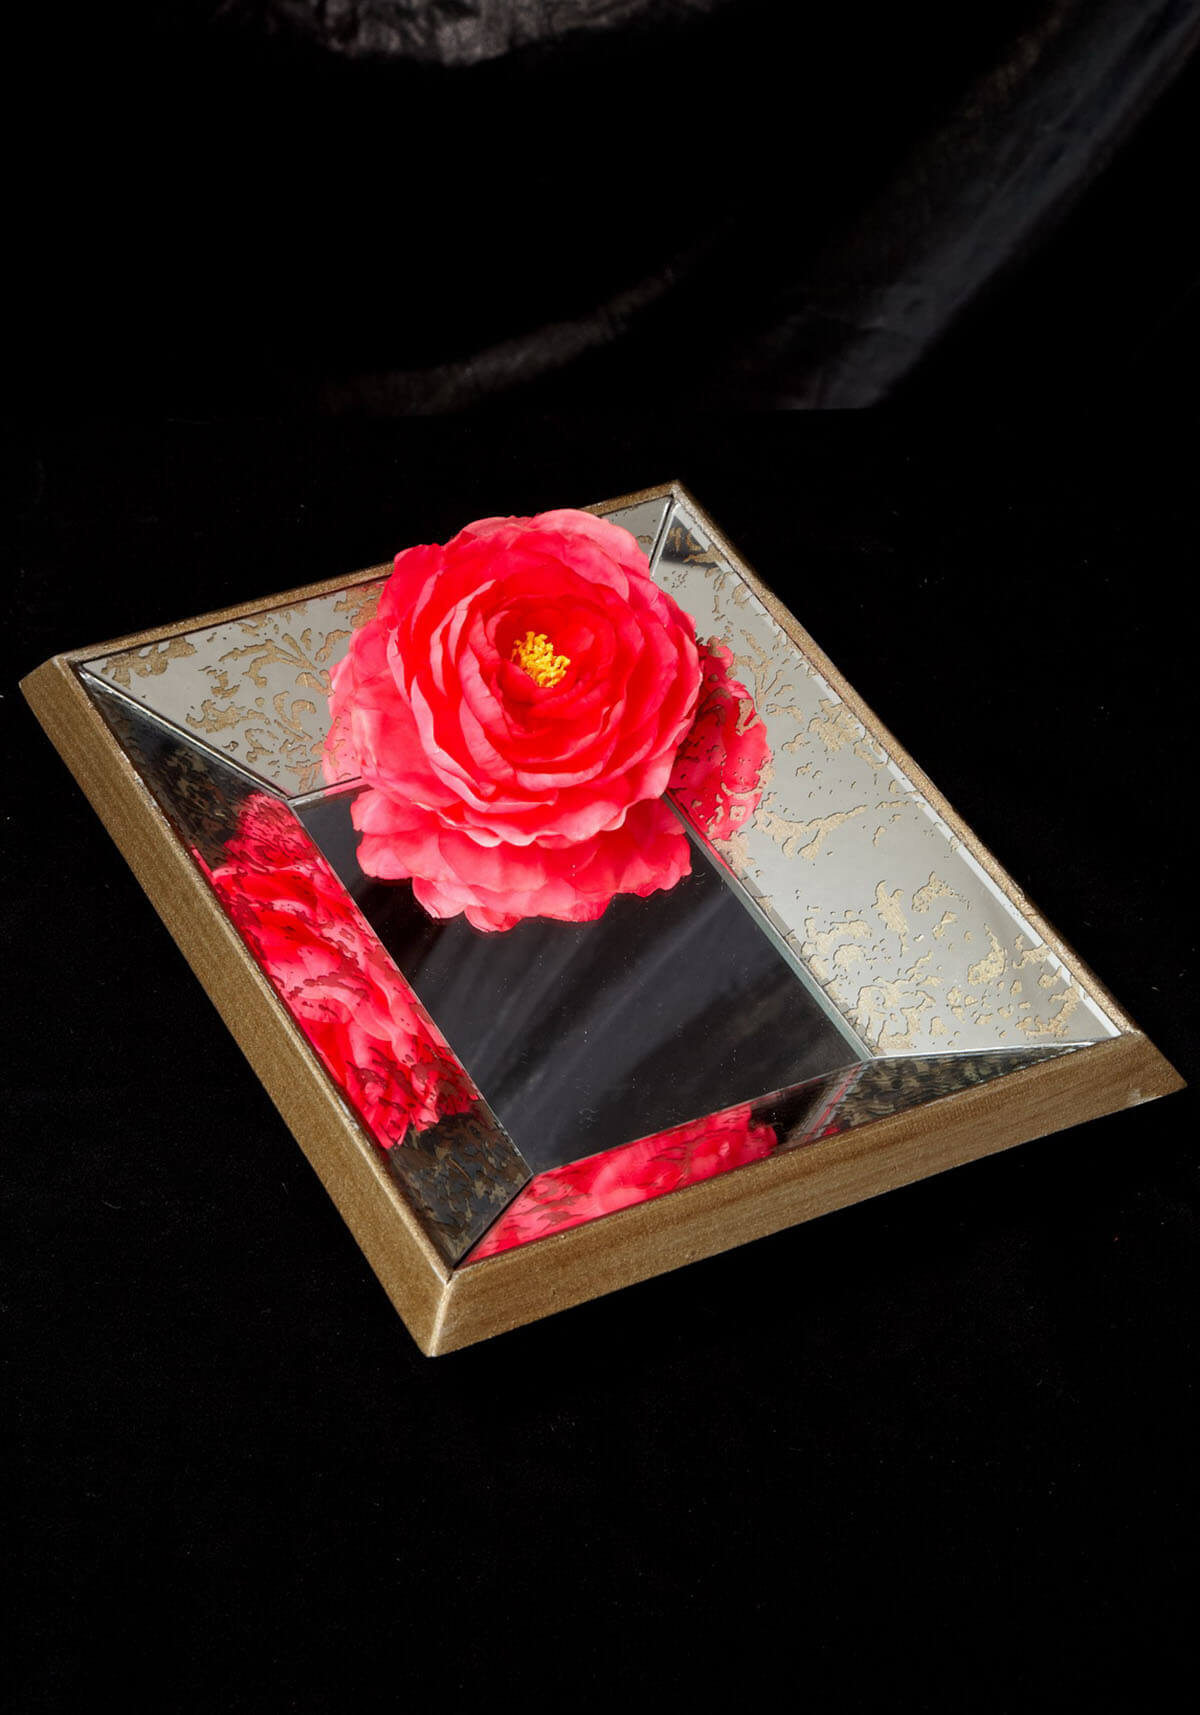 Gold Accented Beveled Mirrored 9x11 Wood Tray